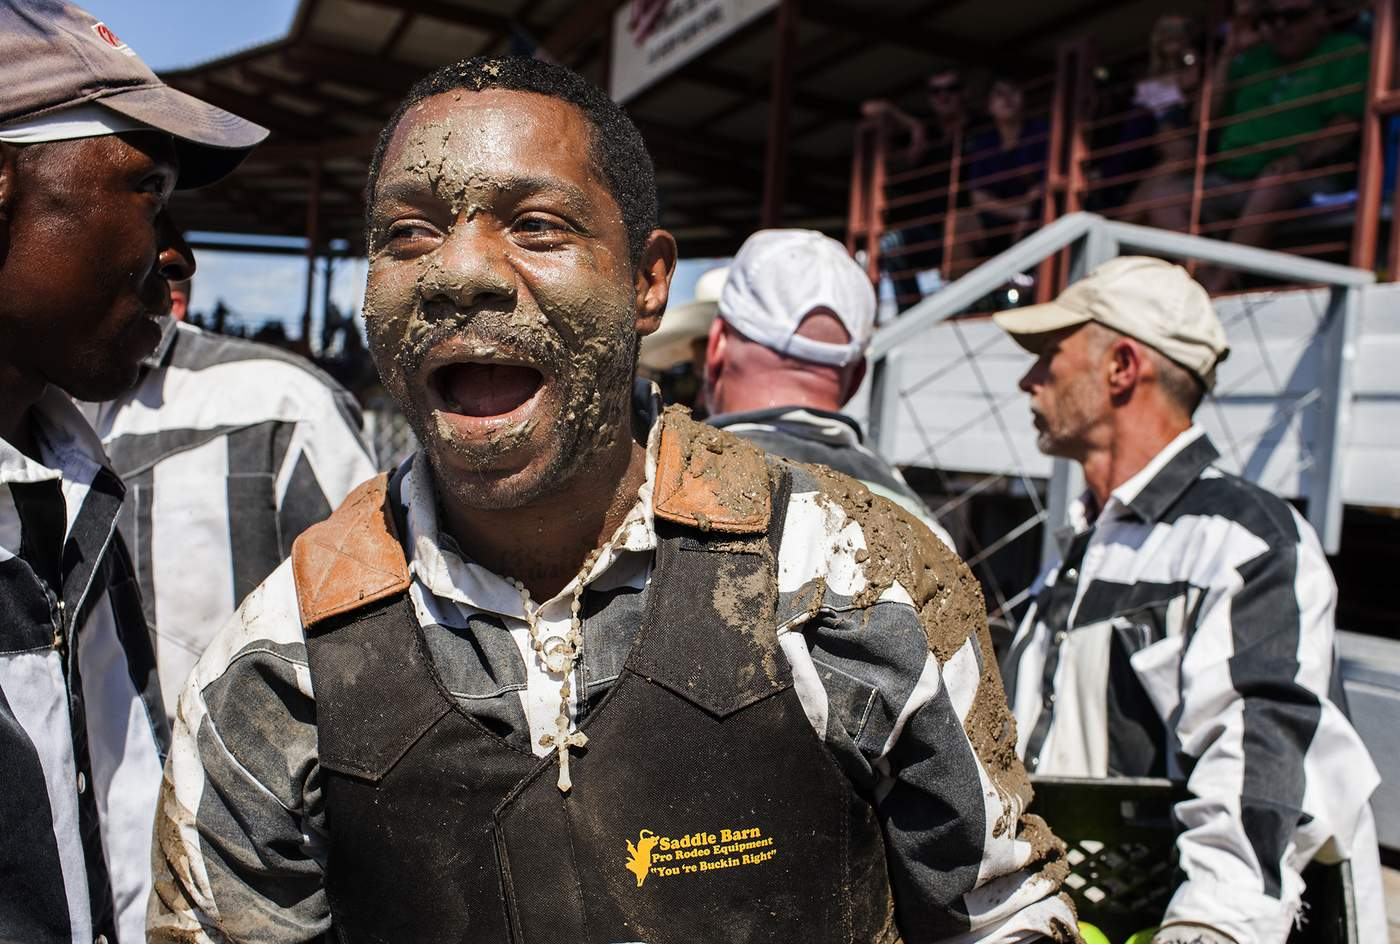 Angola Prison Rodeo: One day of freedom